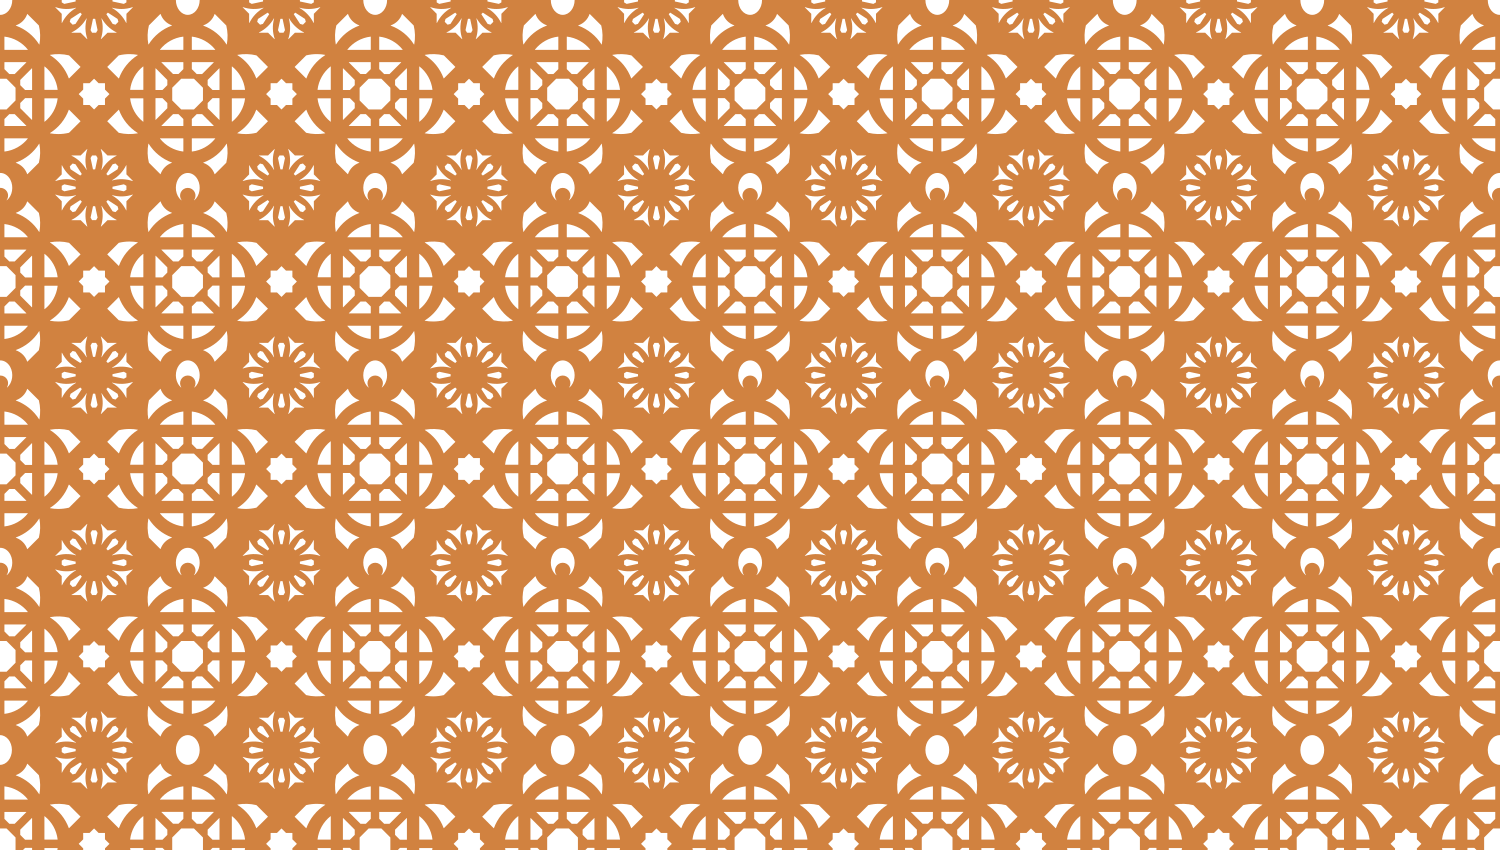 Parasoleil™ Casablanca© pattern displayed with a ochre color overlay